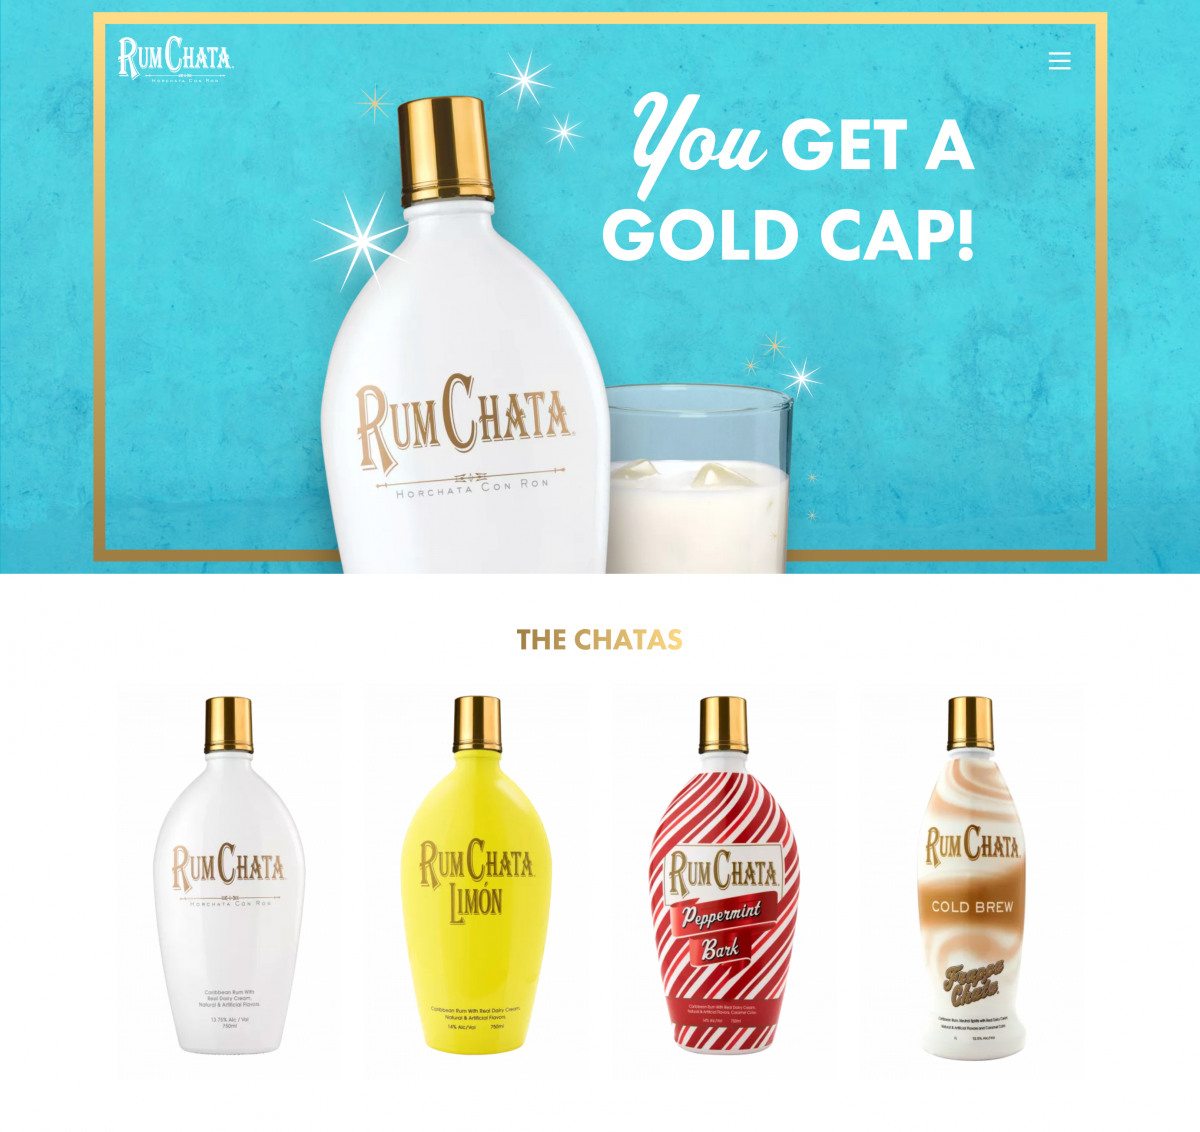 Image of website for RumChata